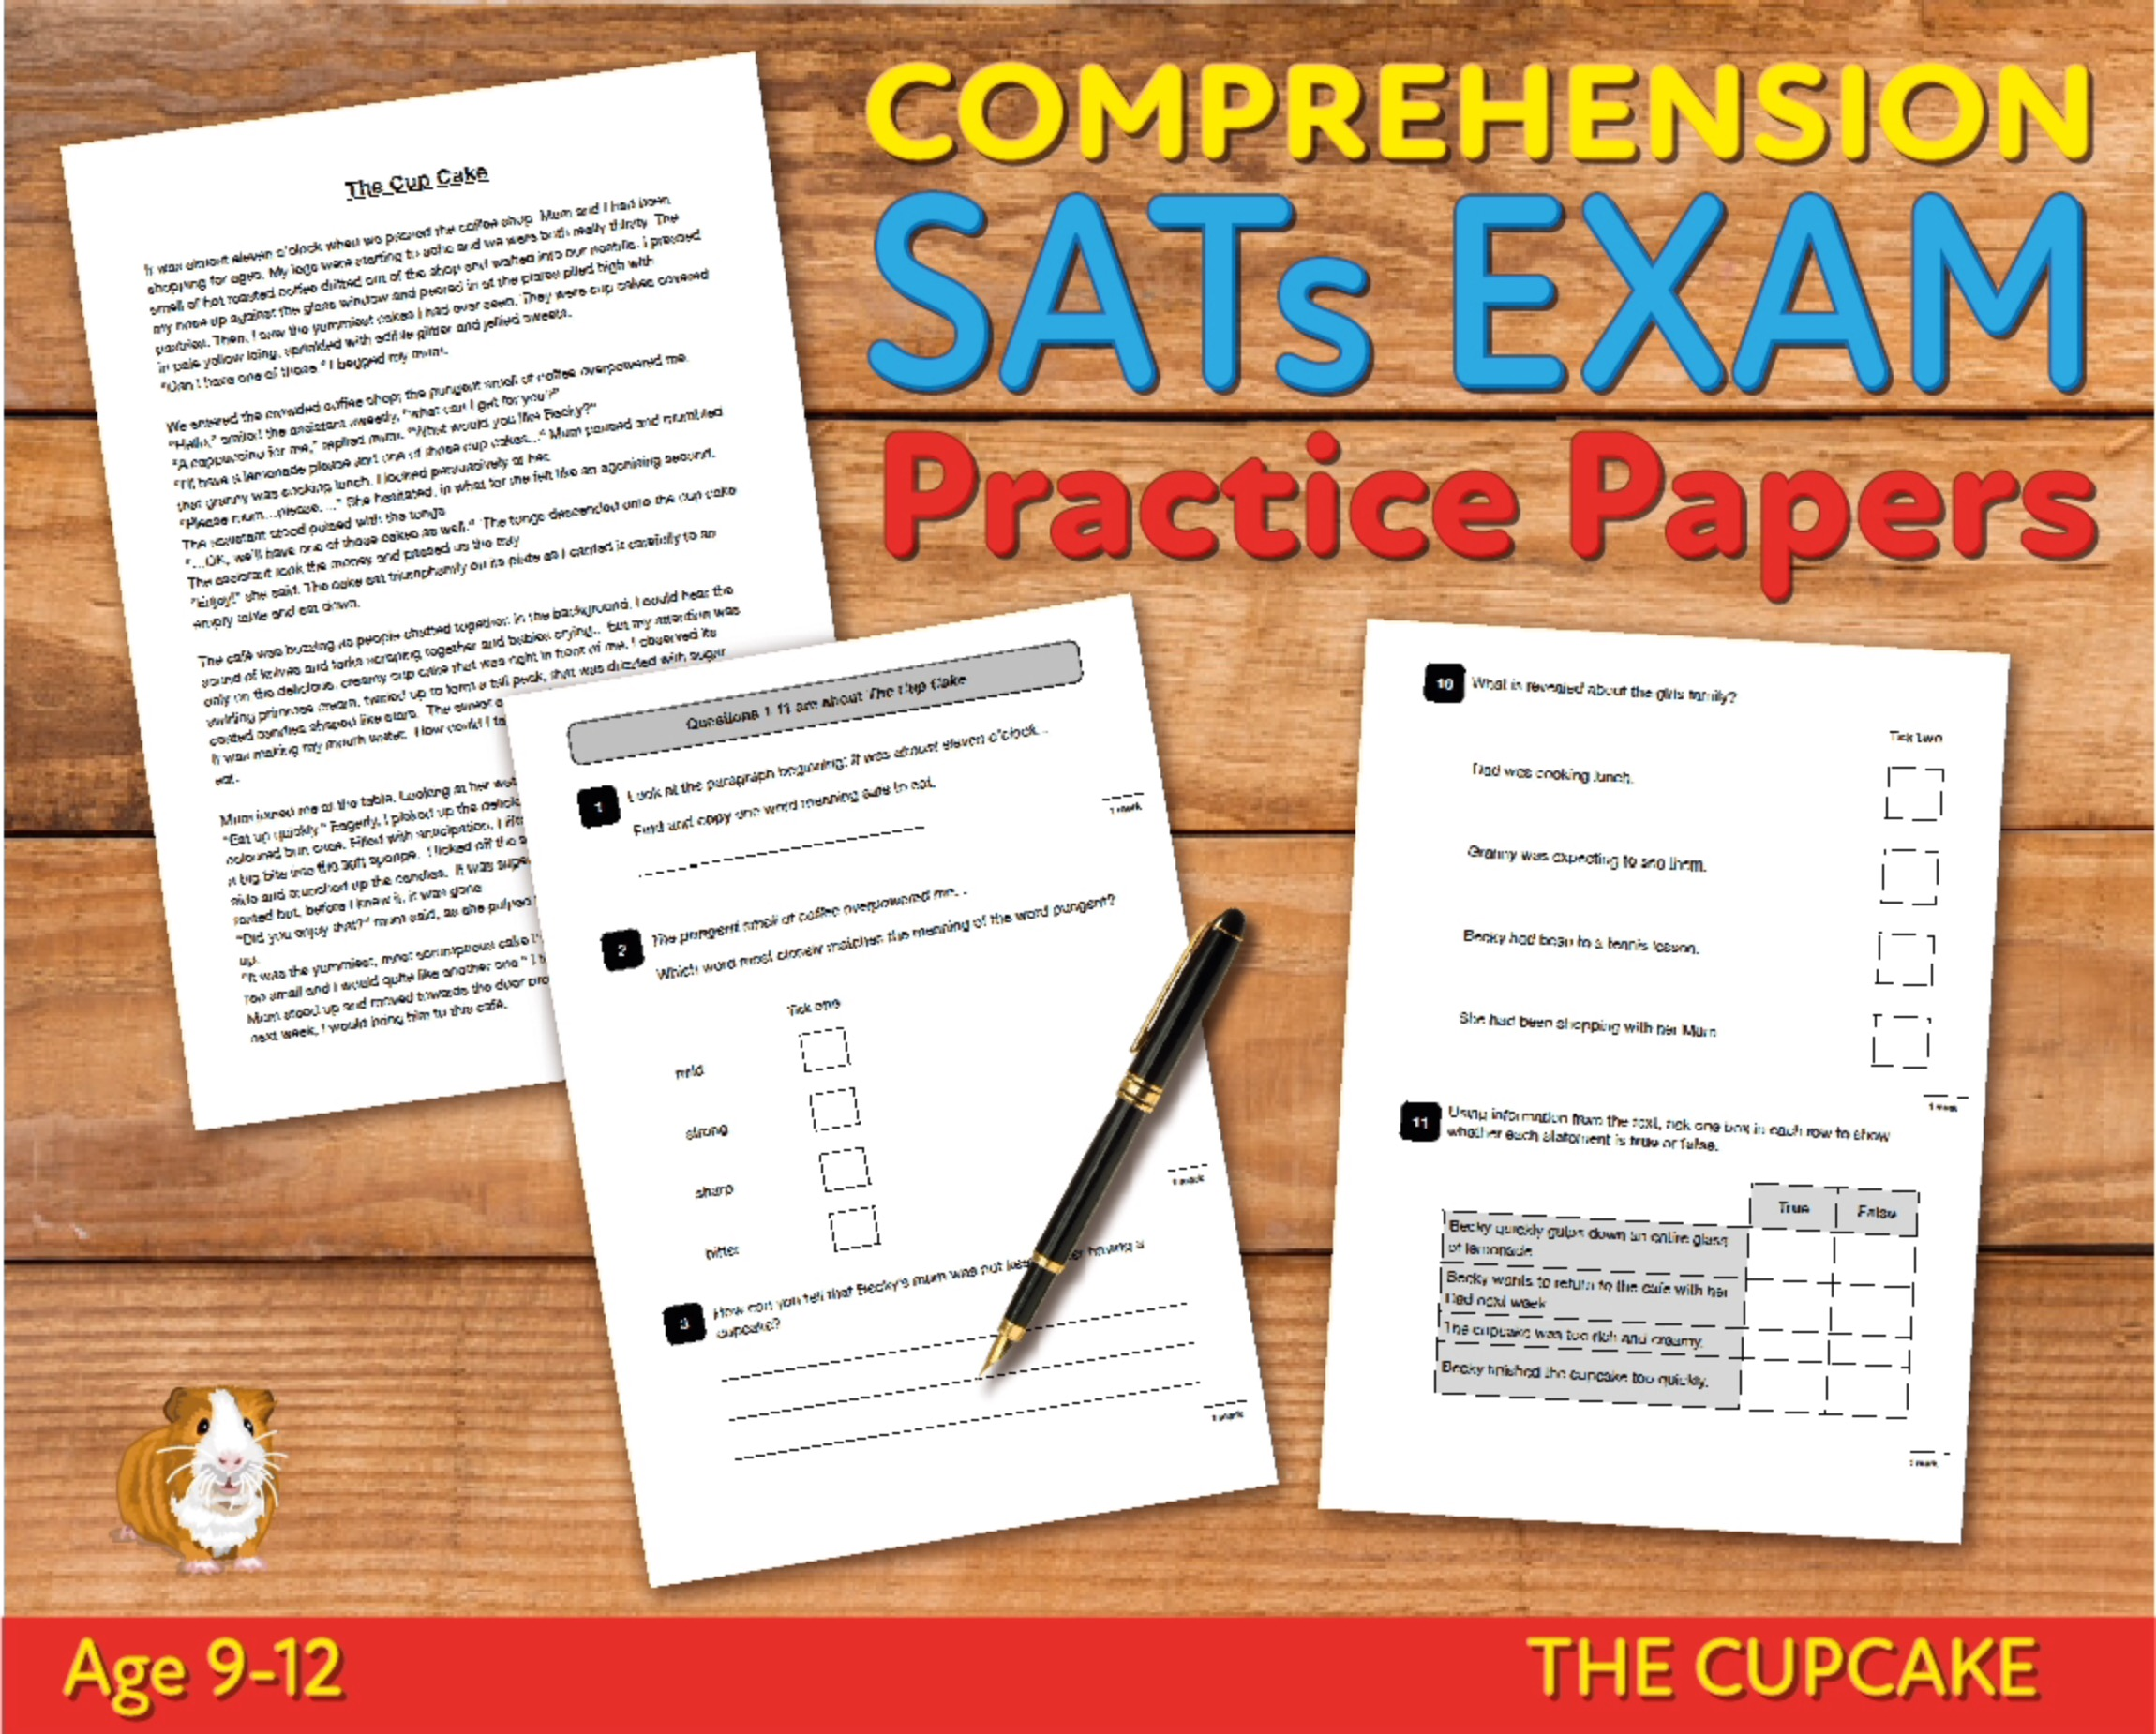 Comprehension Practice Papers (Bundle 2) 9-12 years